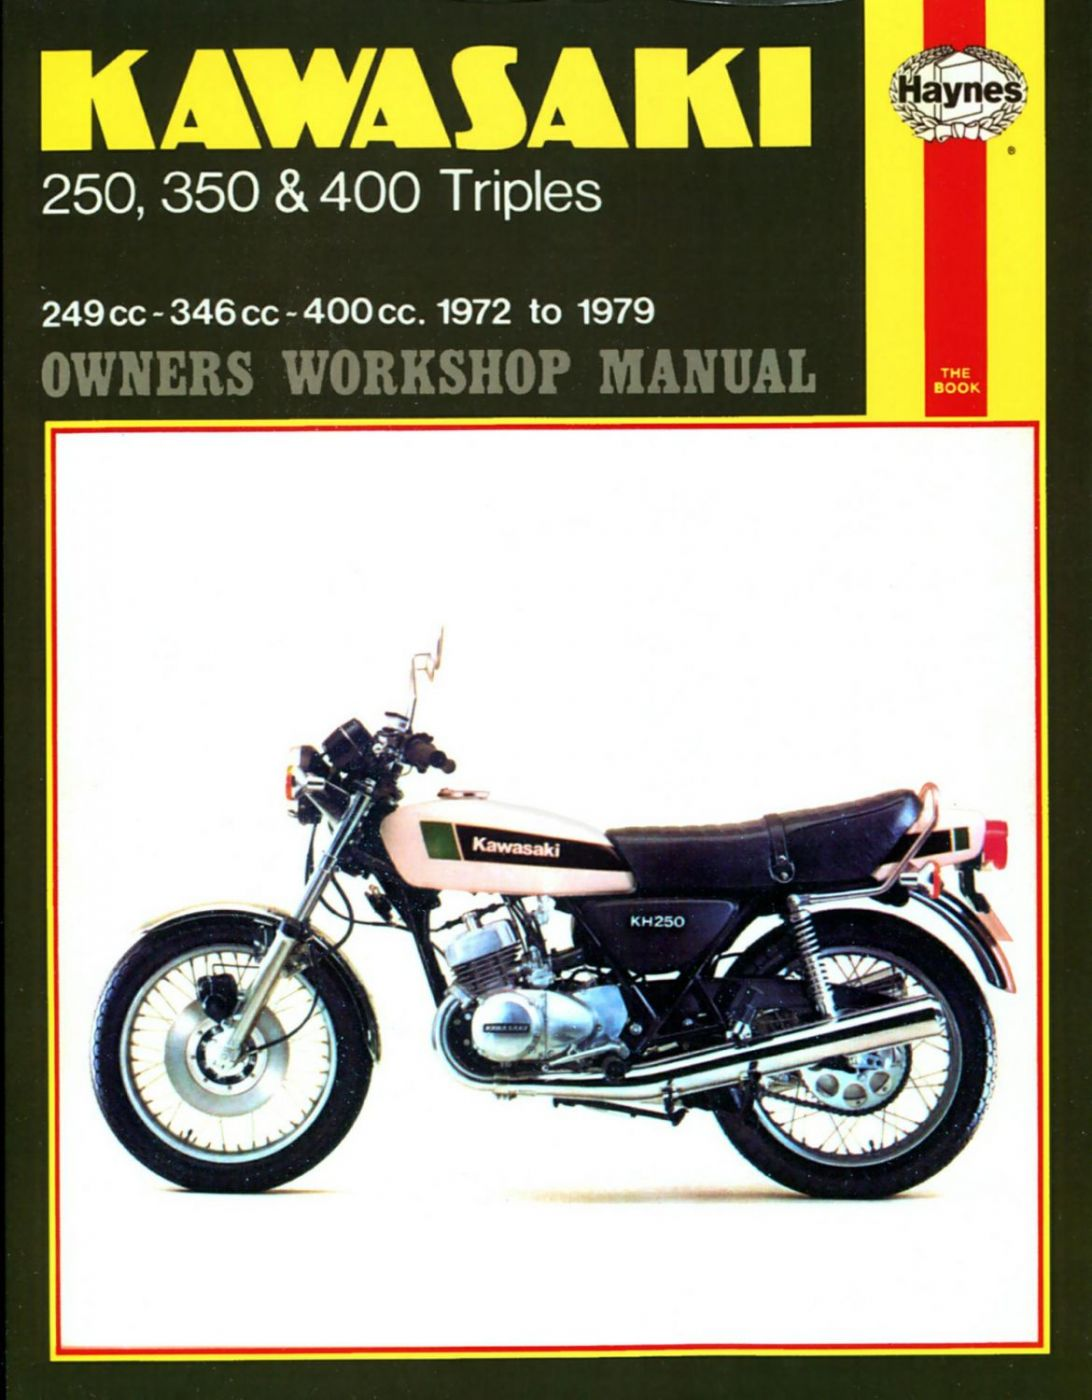 Haynes Manuals - 680134Y image